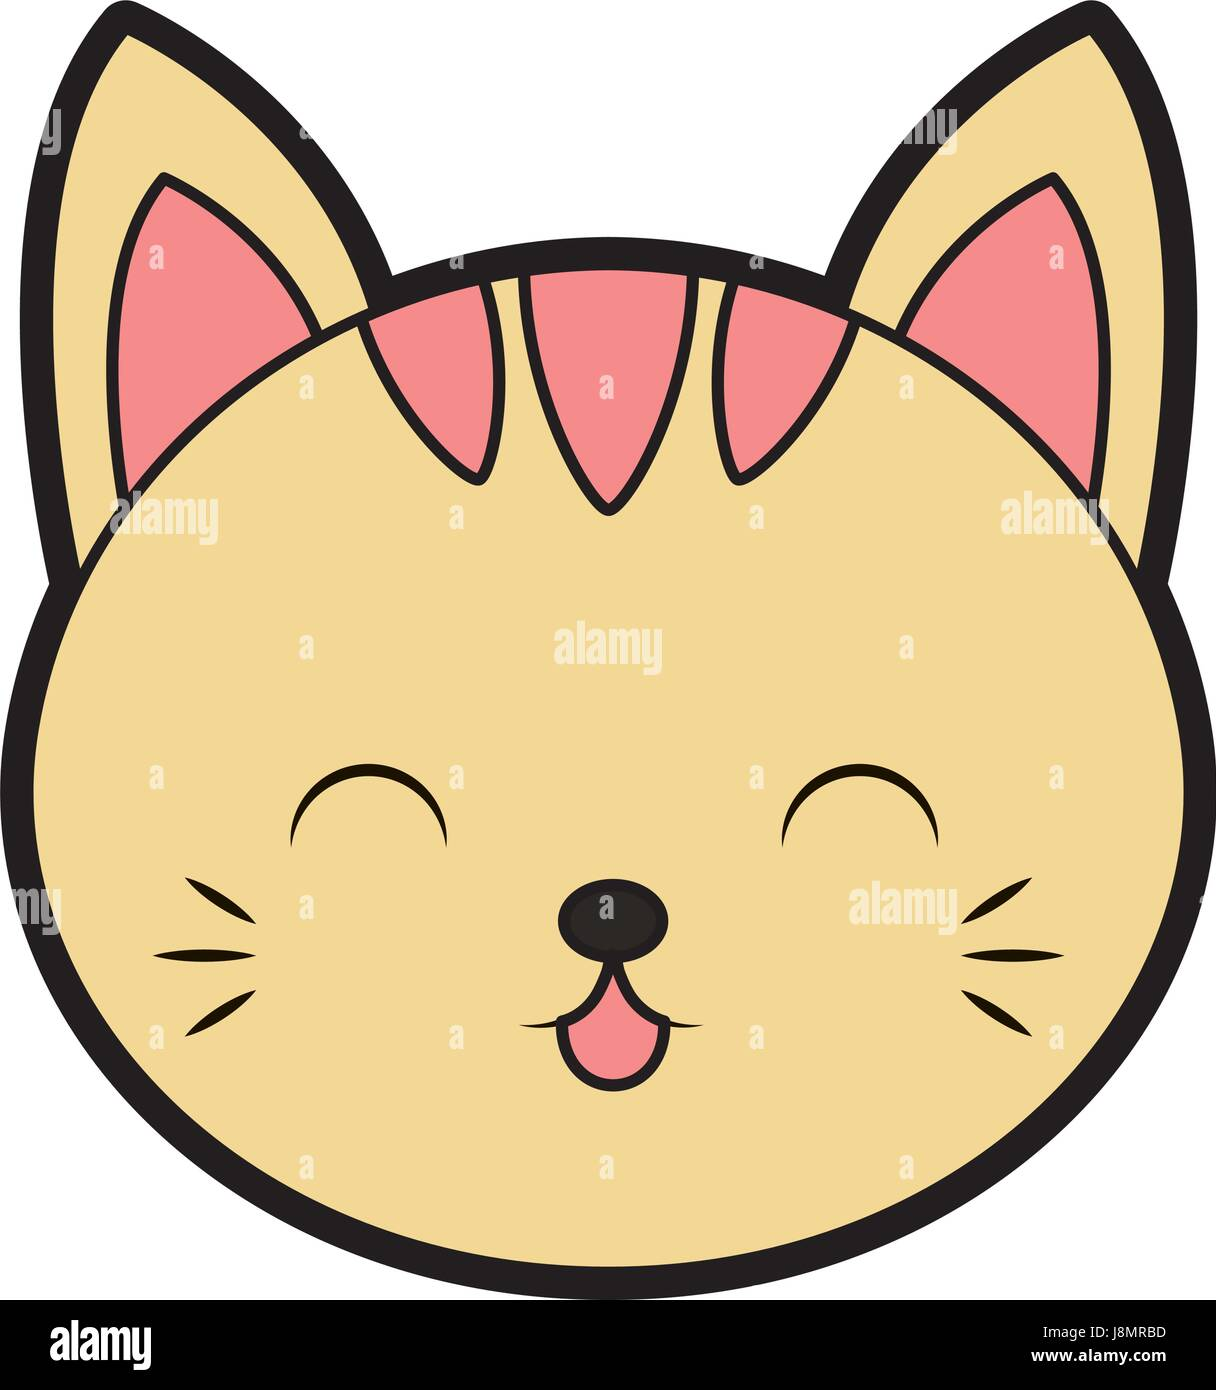 Cute Cat Face Cartoon Stock Vector Image Art Alamy